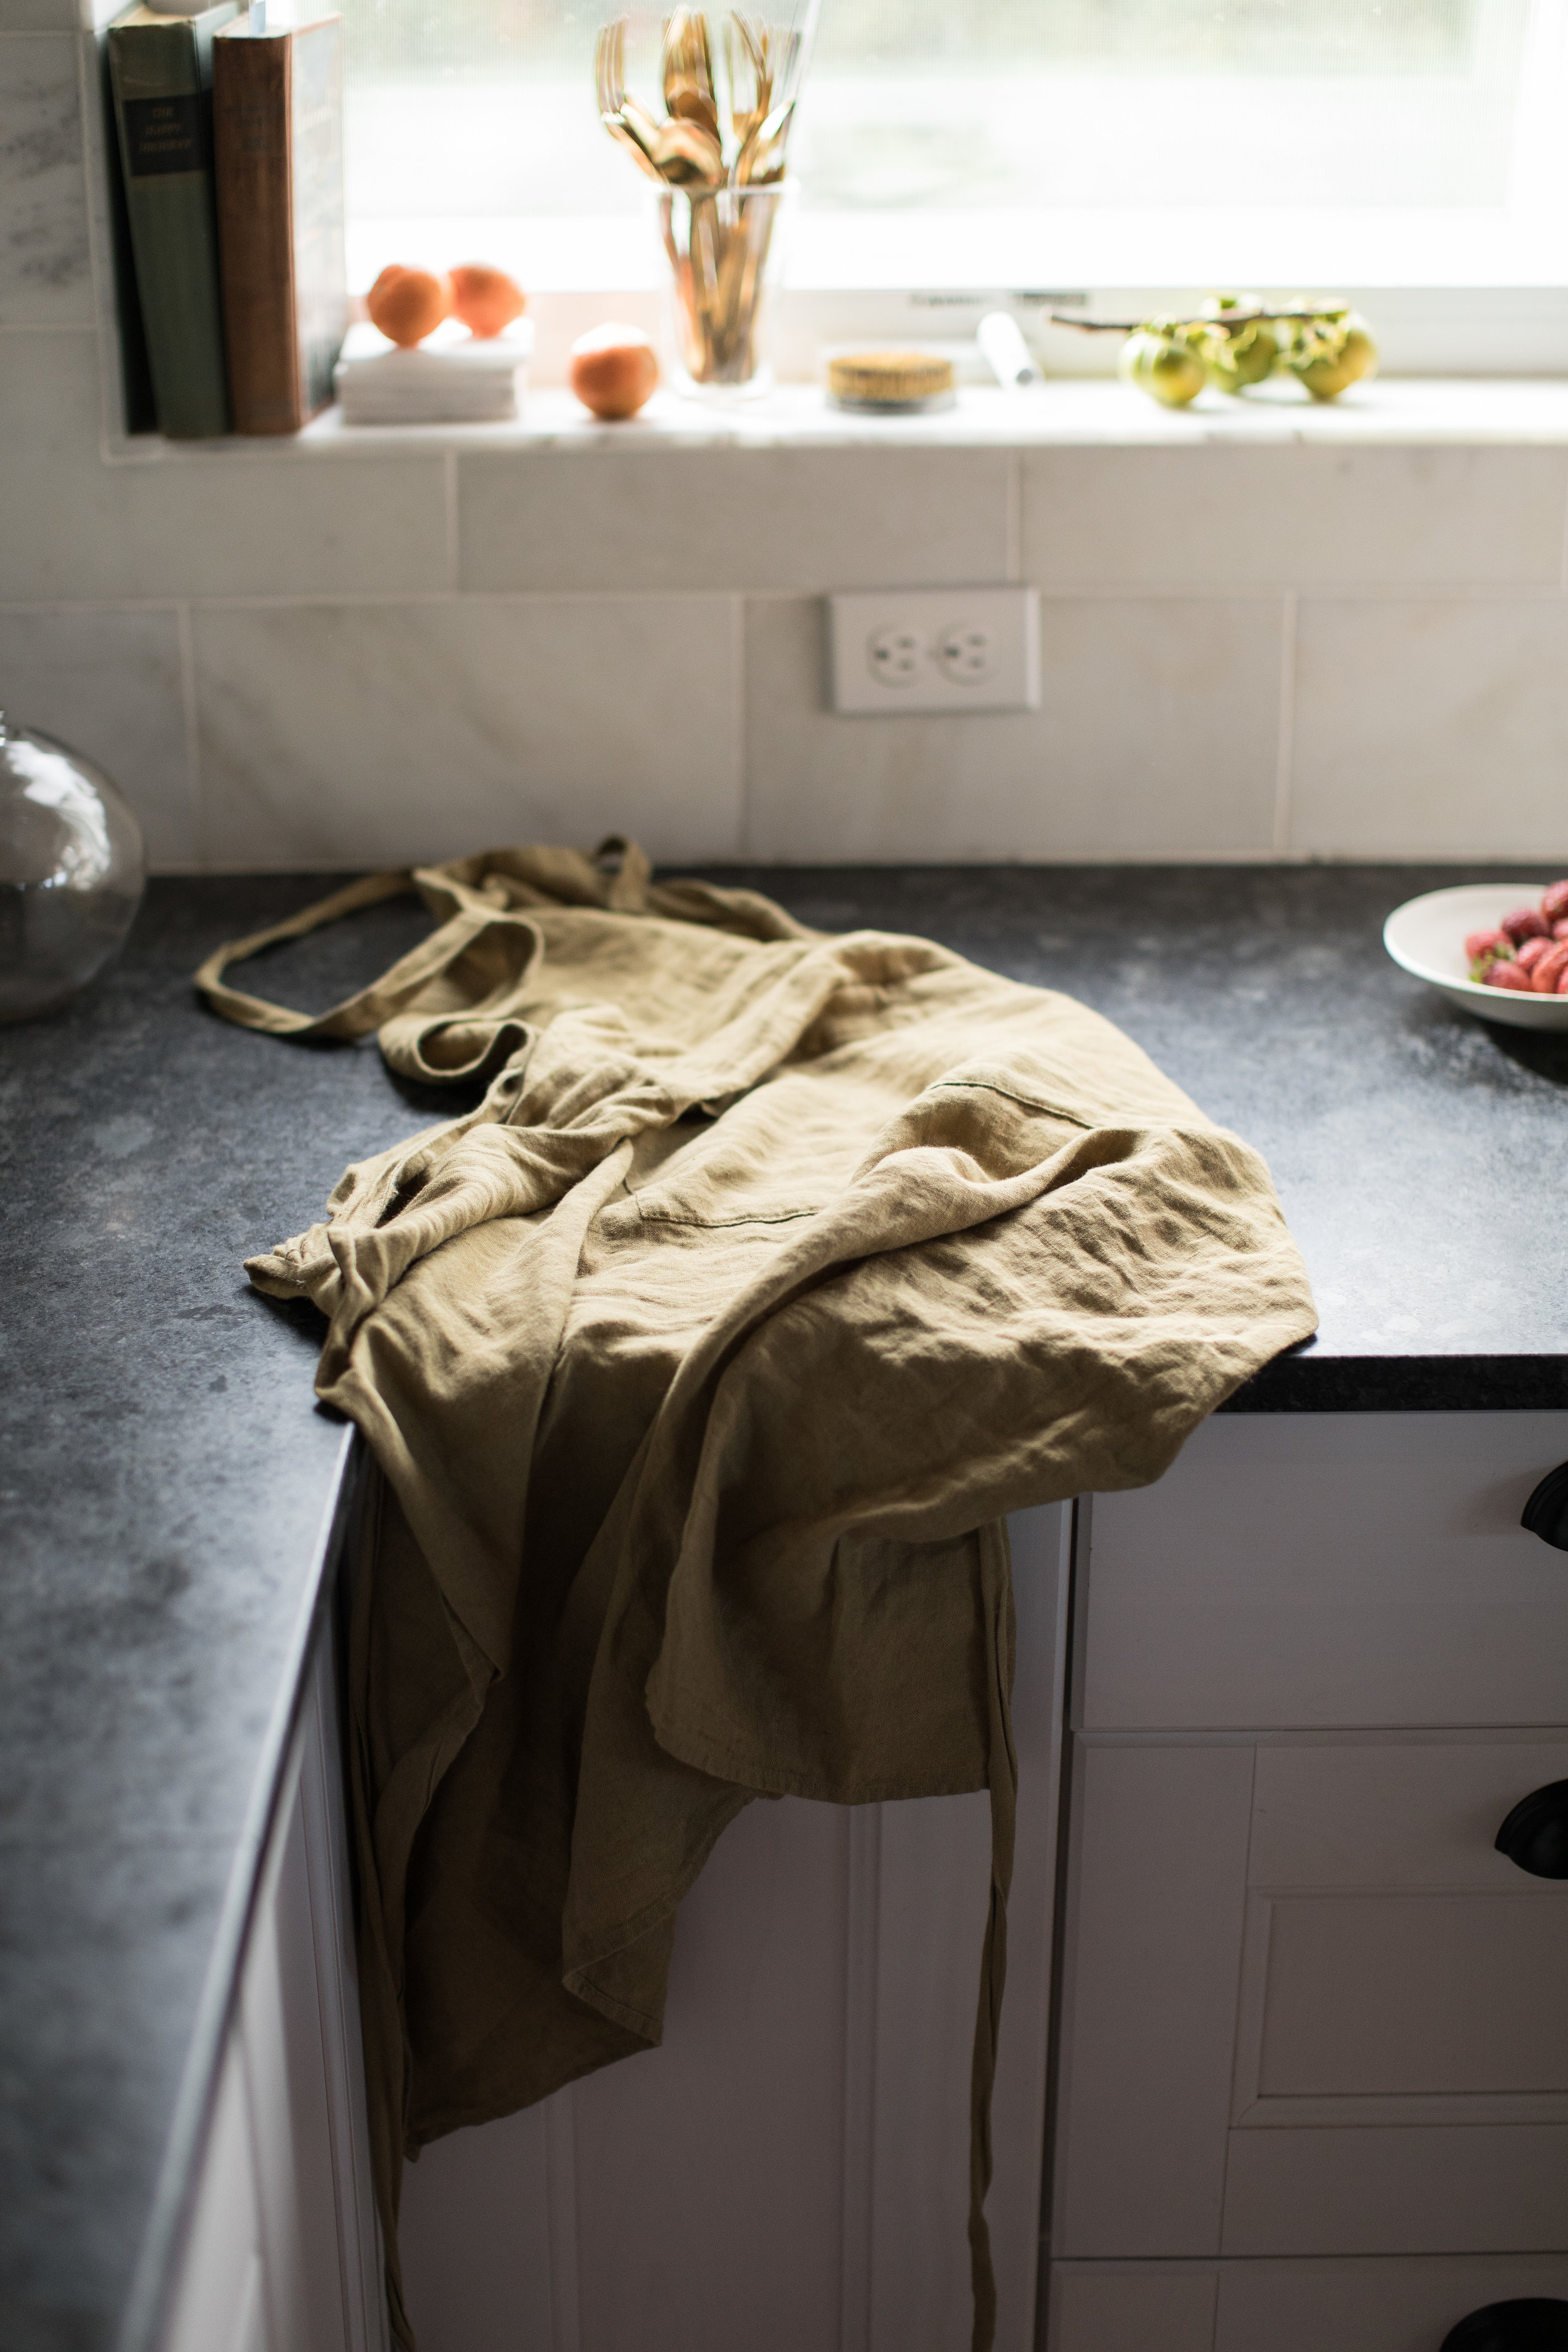 Source: Linen Apron, Gold Flatware, Ceramic Dish on counter